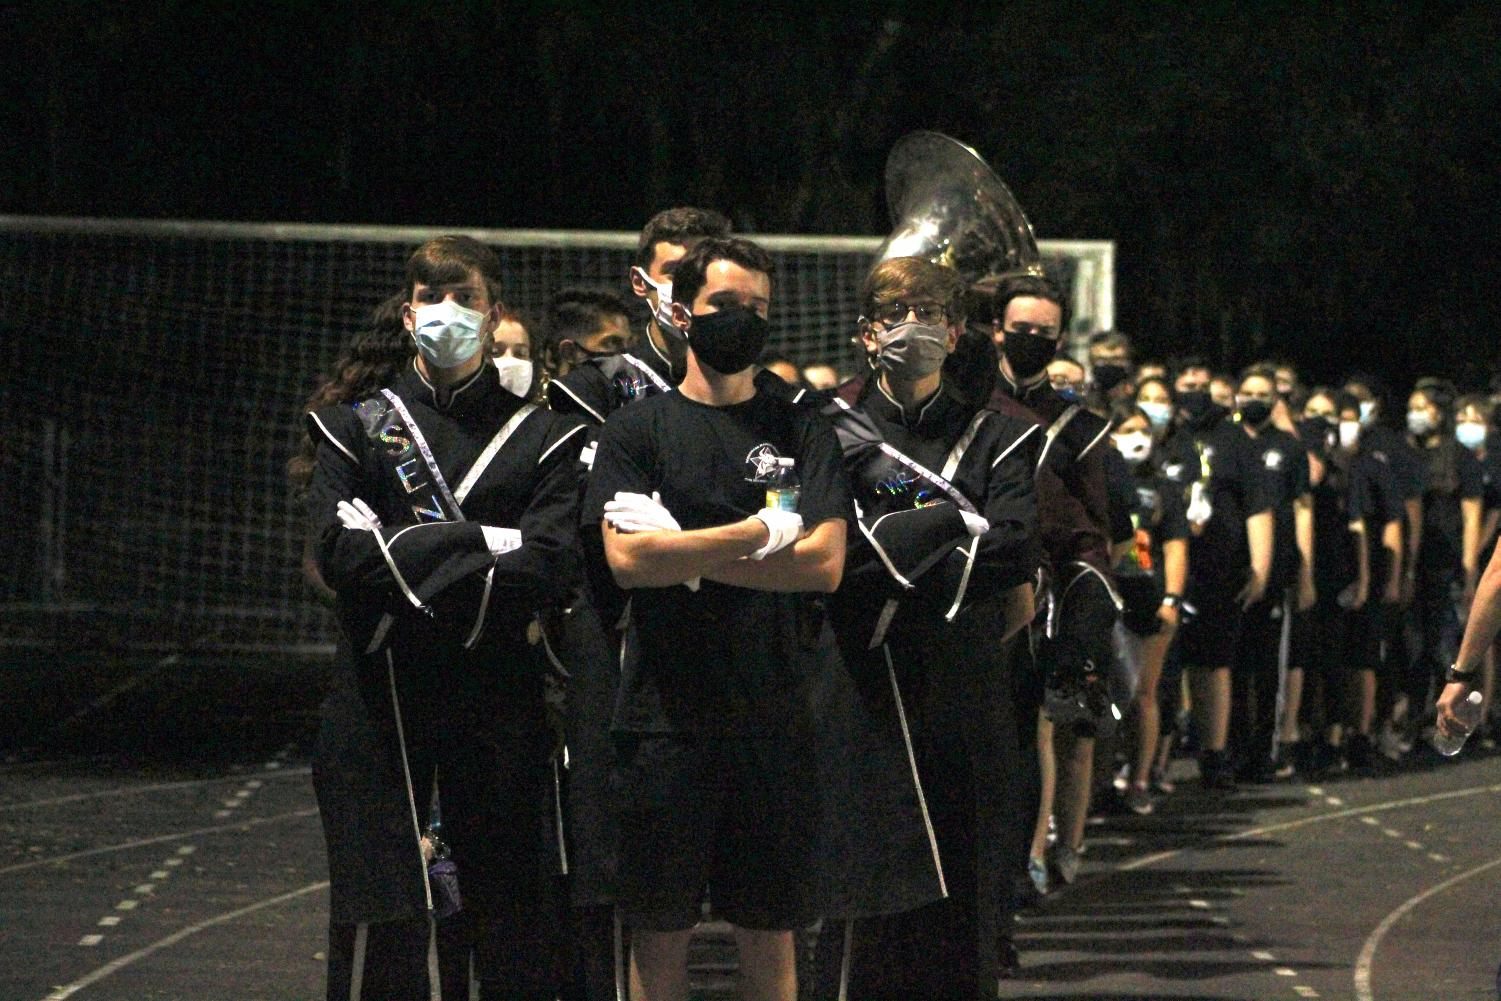 The WRHS Marching Band after playing at the school